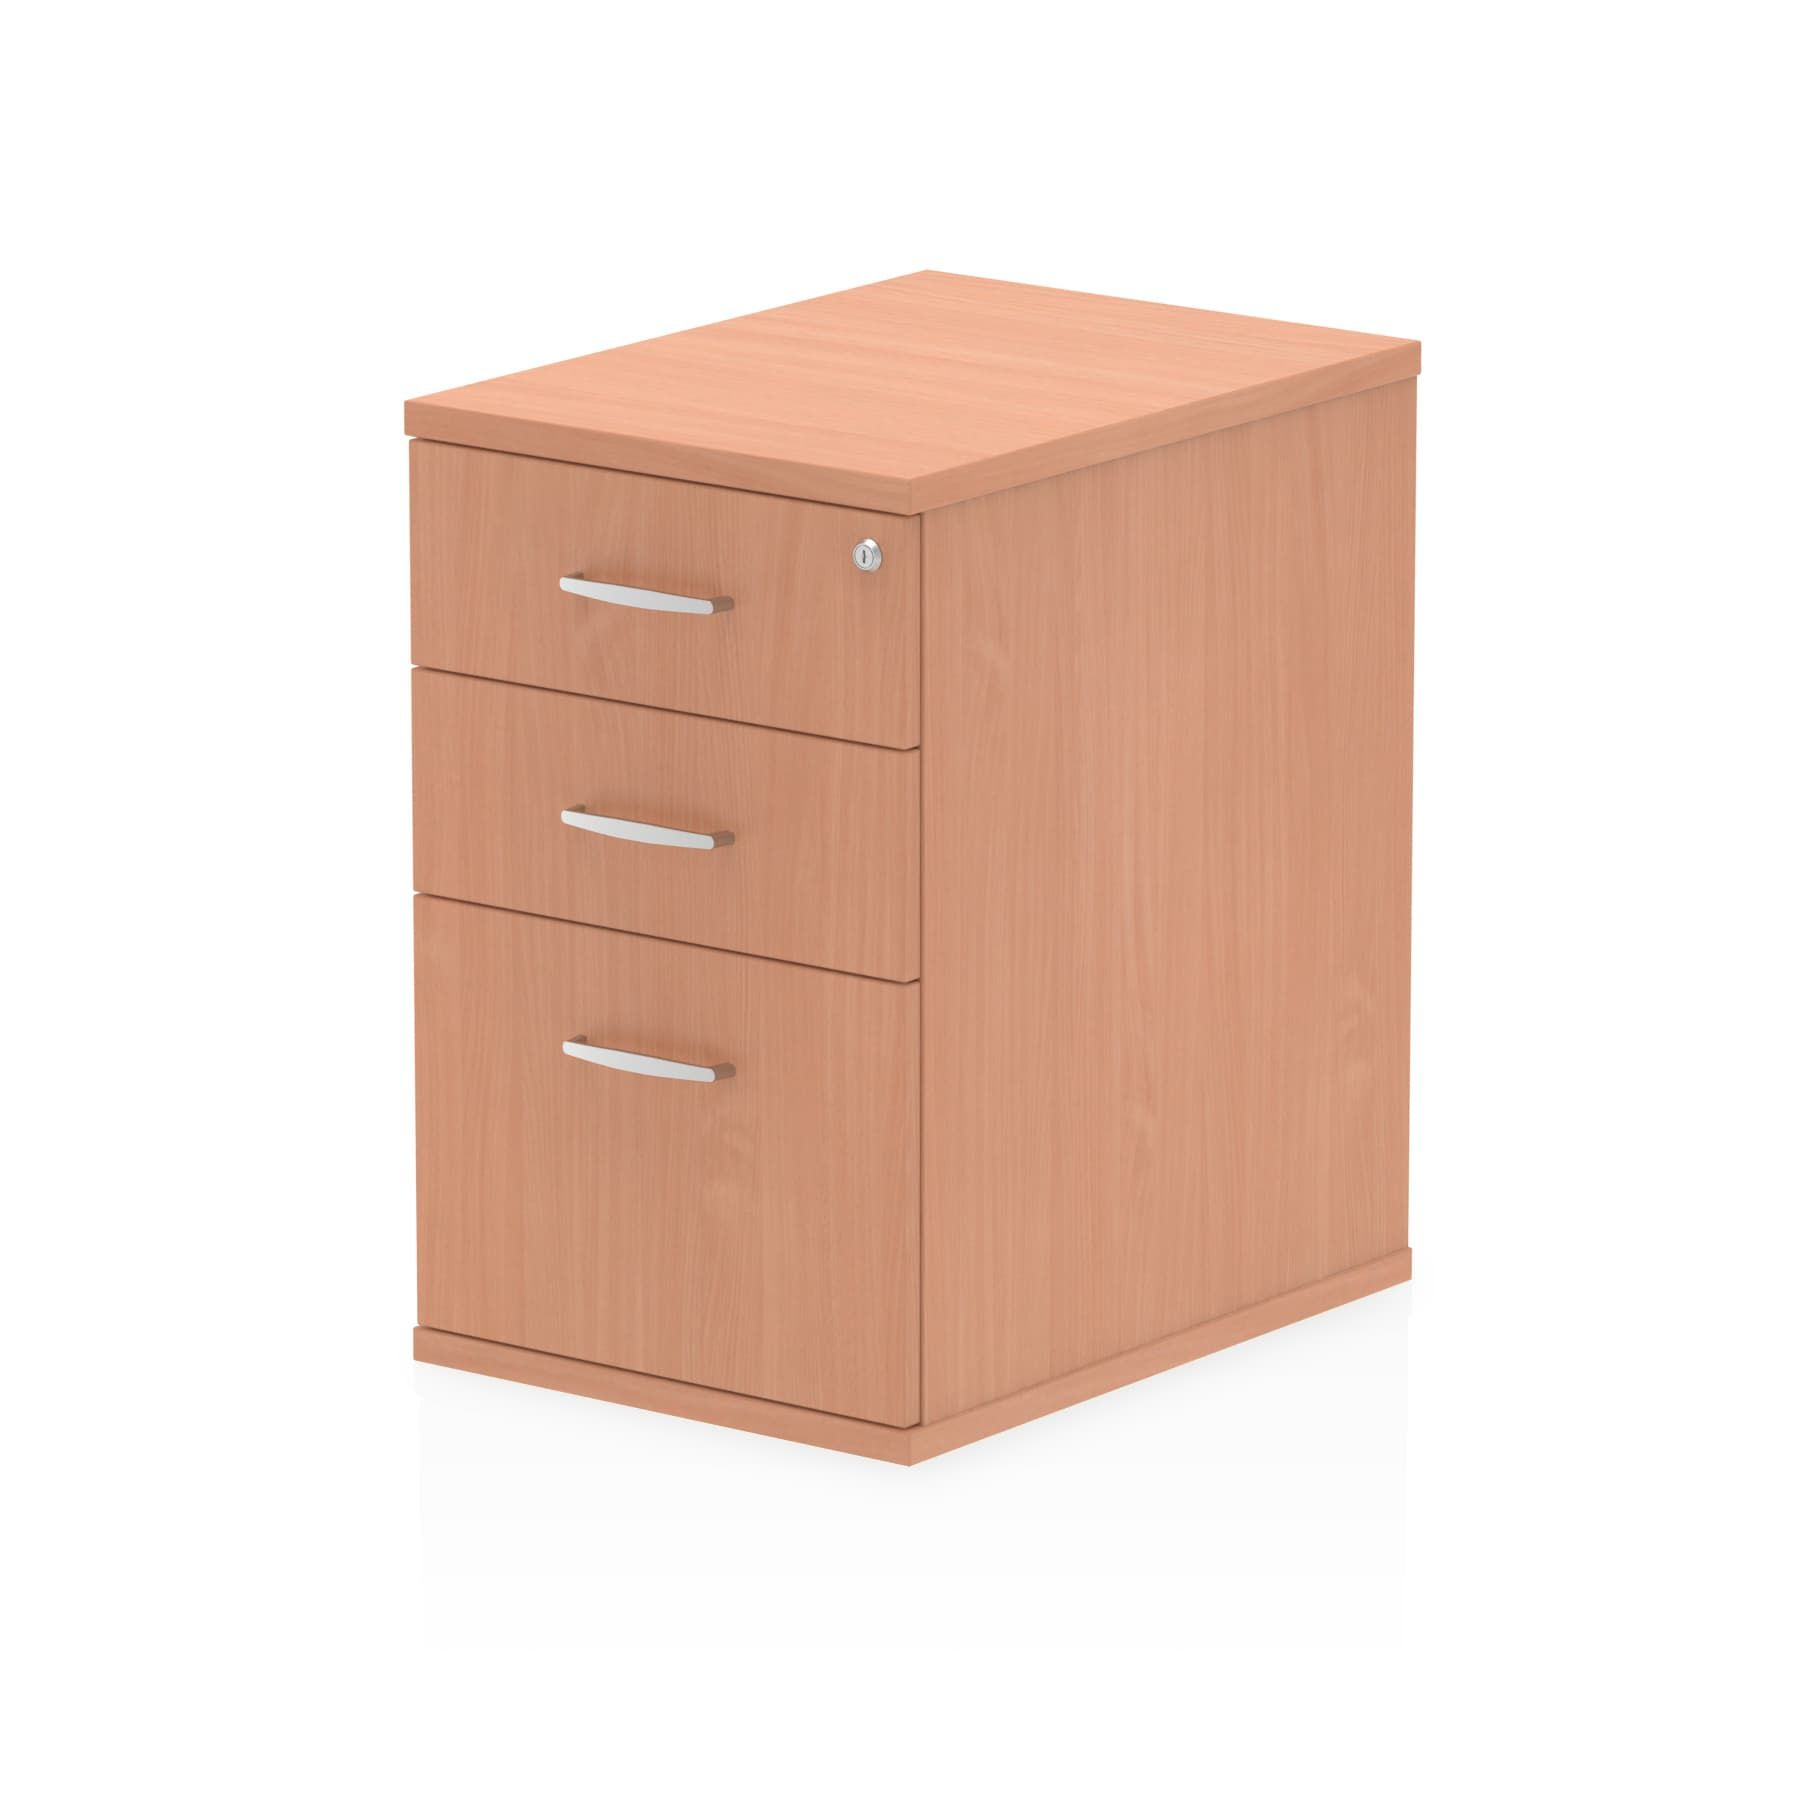 Impulse Desk High Pedestal 3 Drawer 600